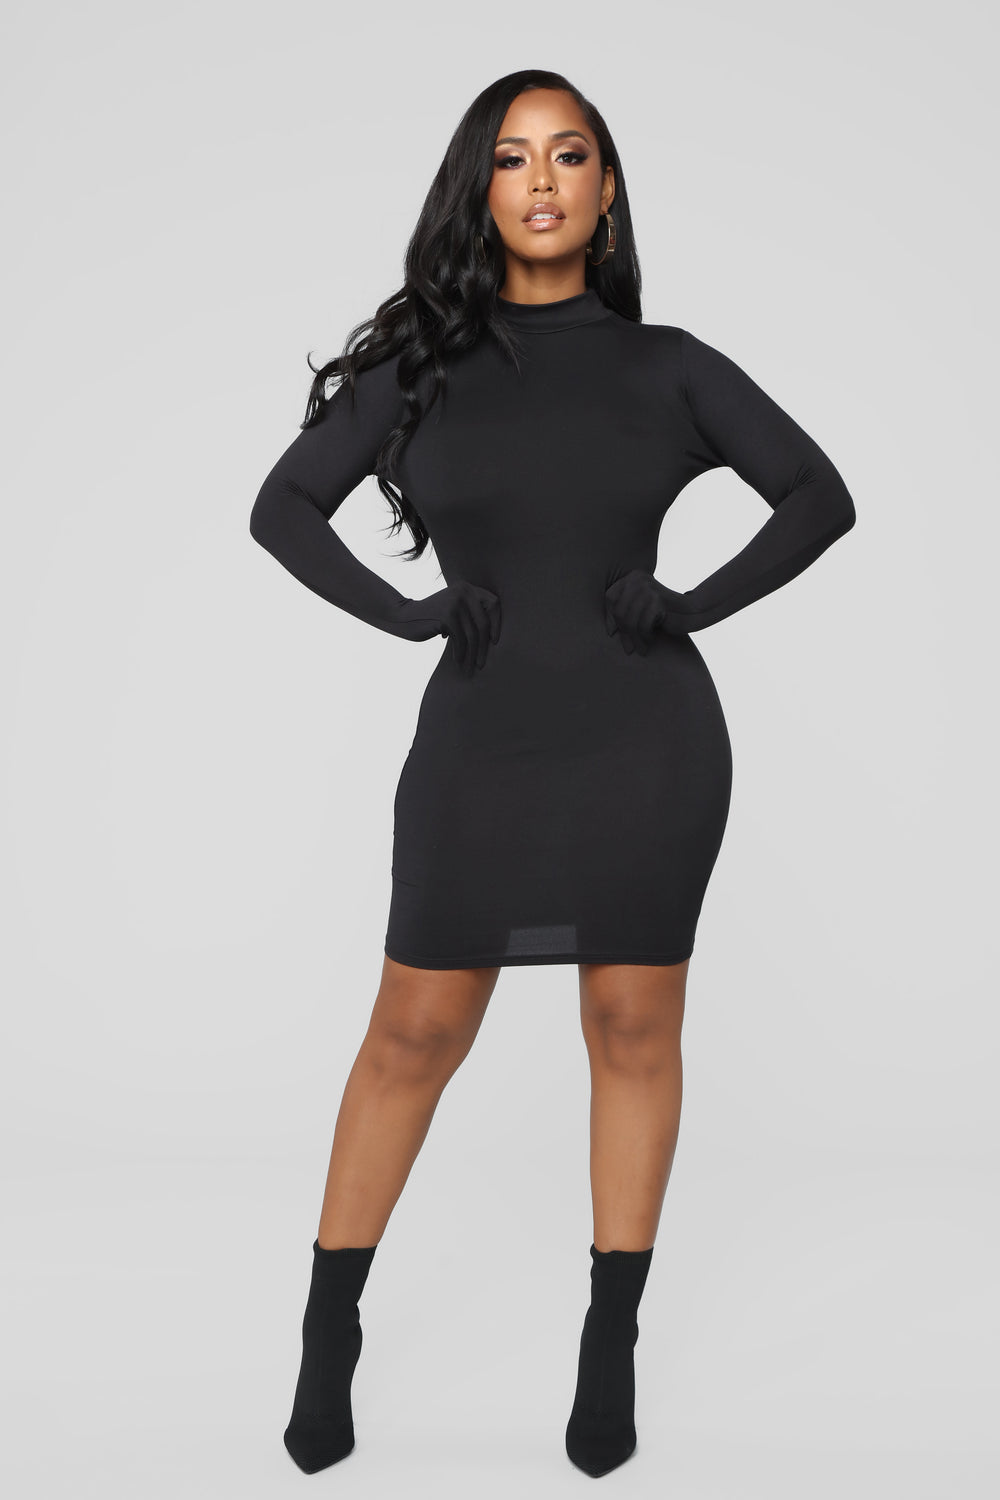 No Fingertips Glove Mini Dress - Black